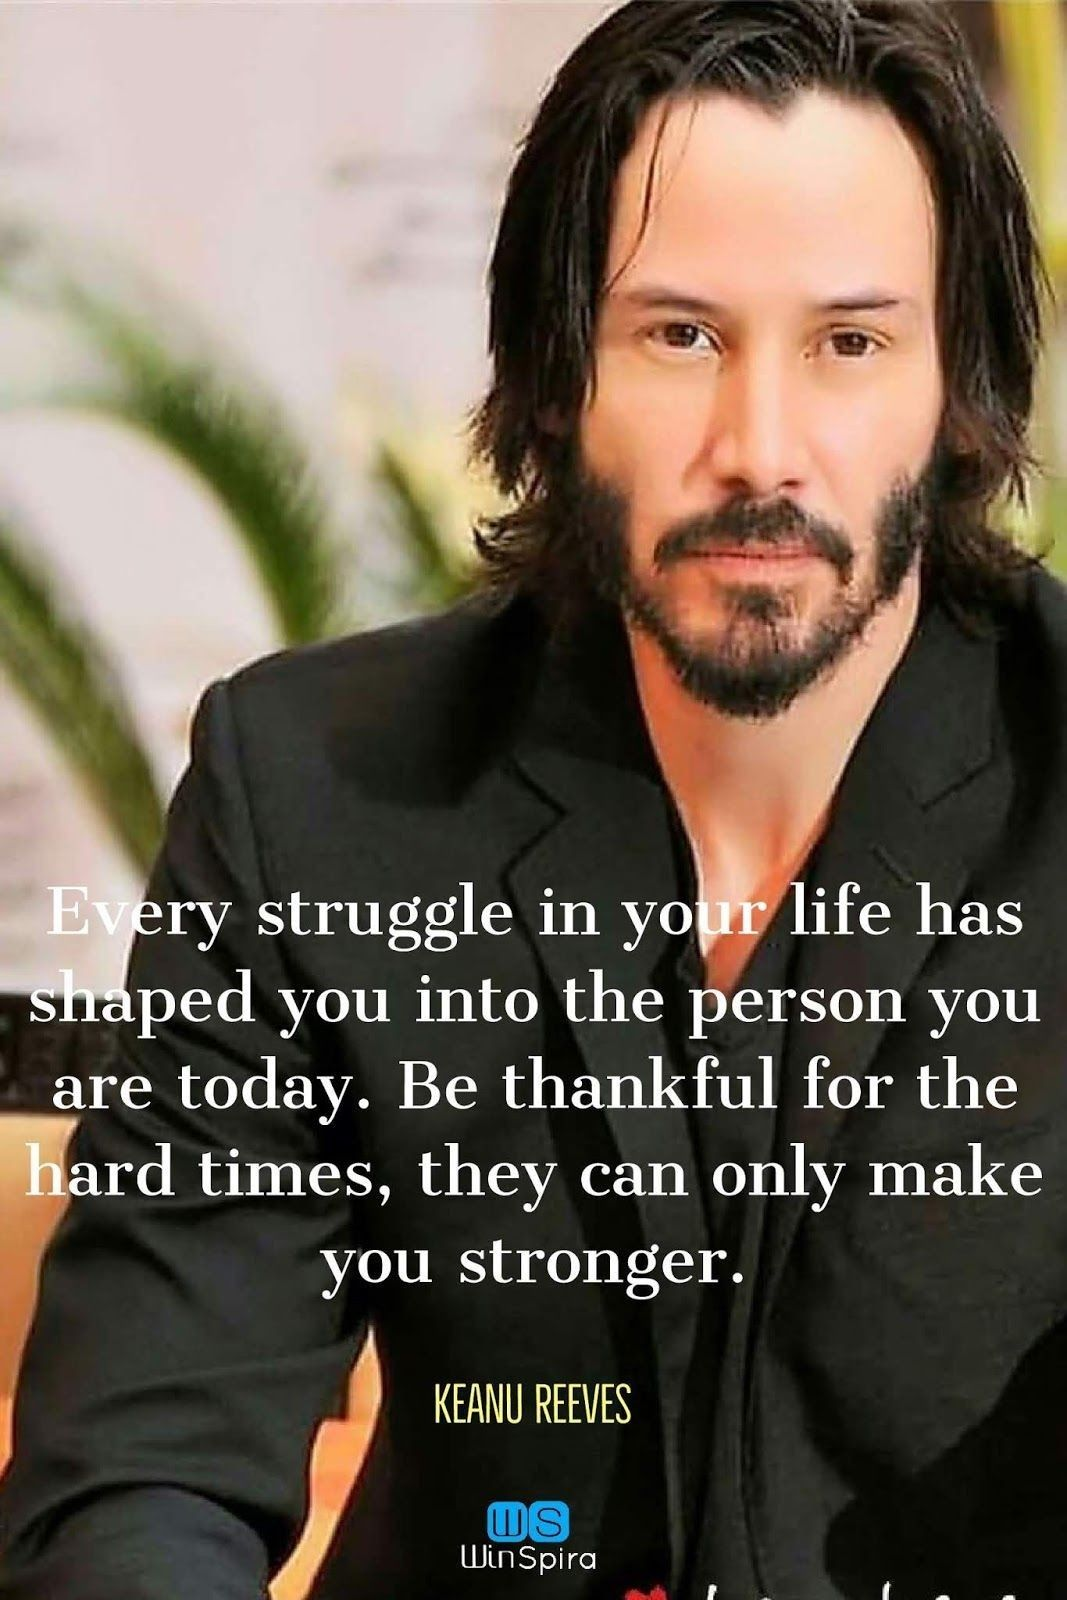 Keanu reeves quotes image by Maria Luz Ocampo-Duenas on ...